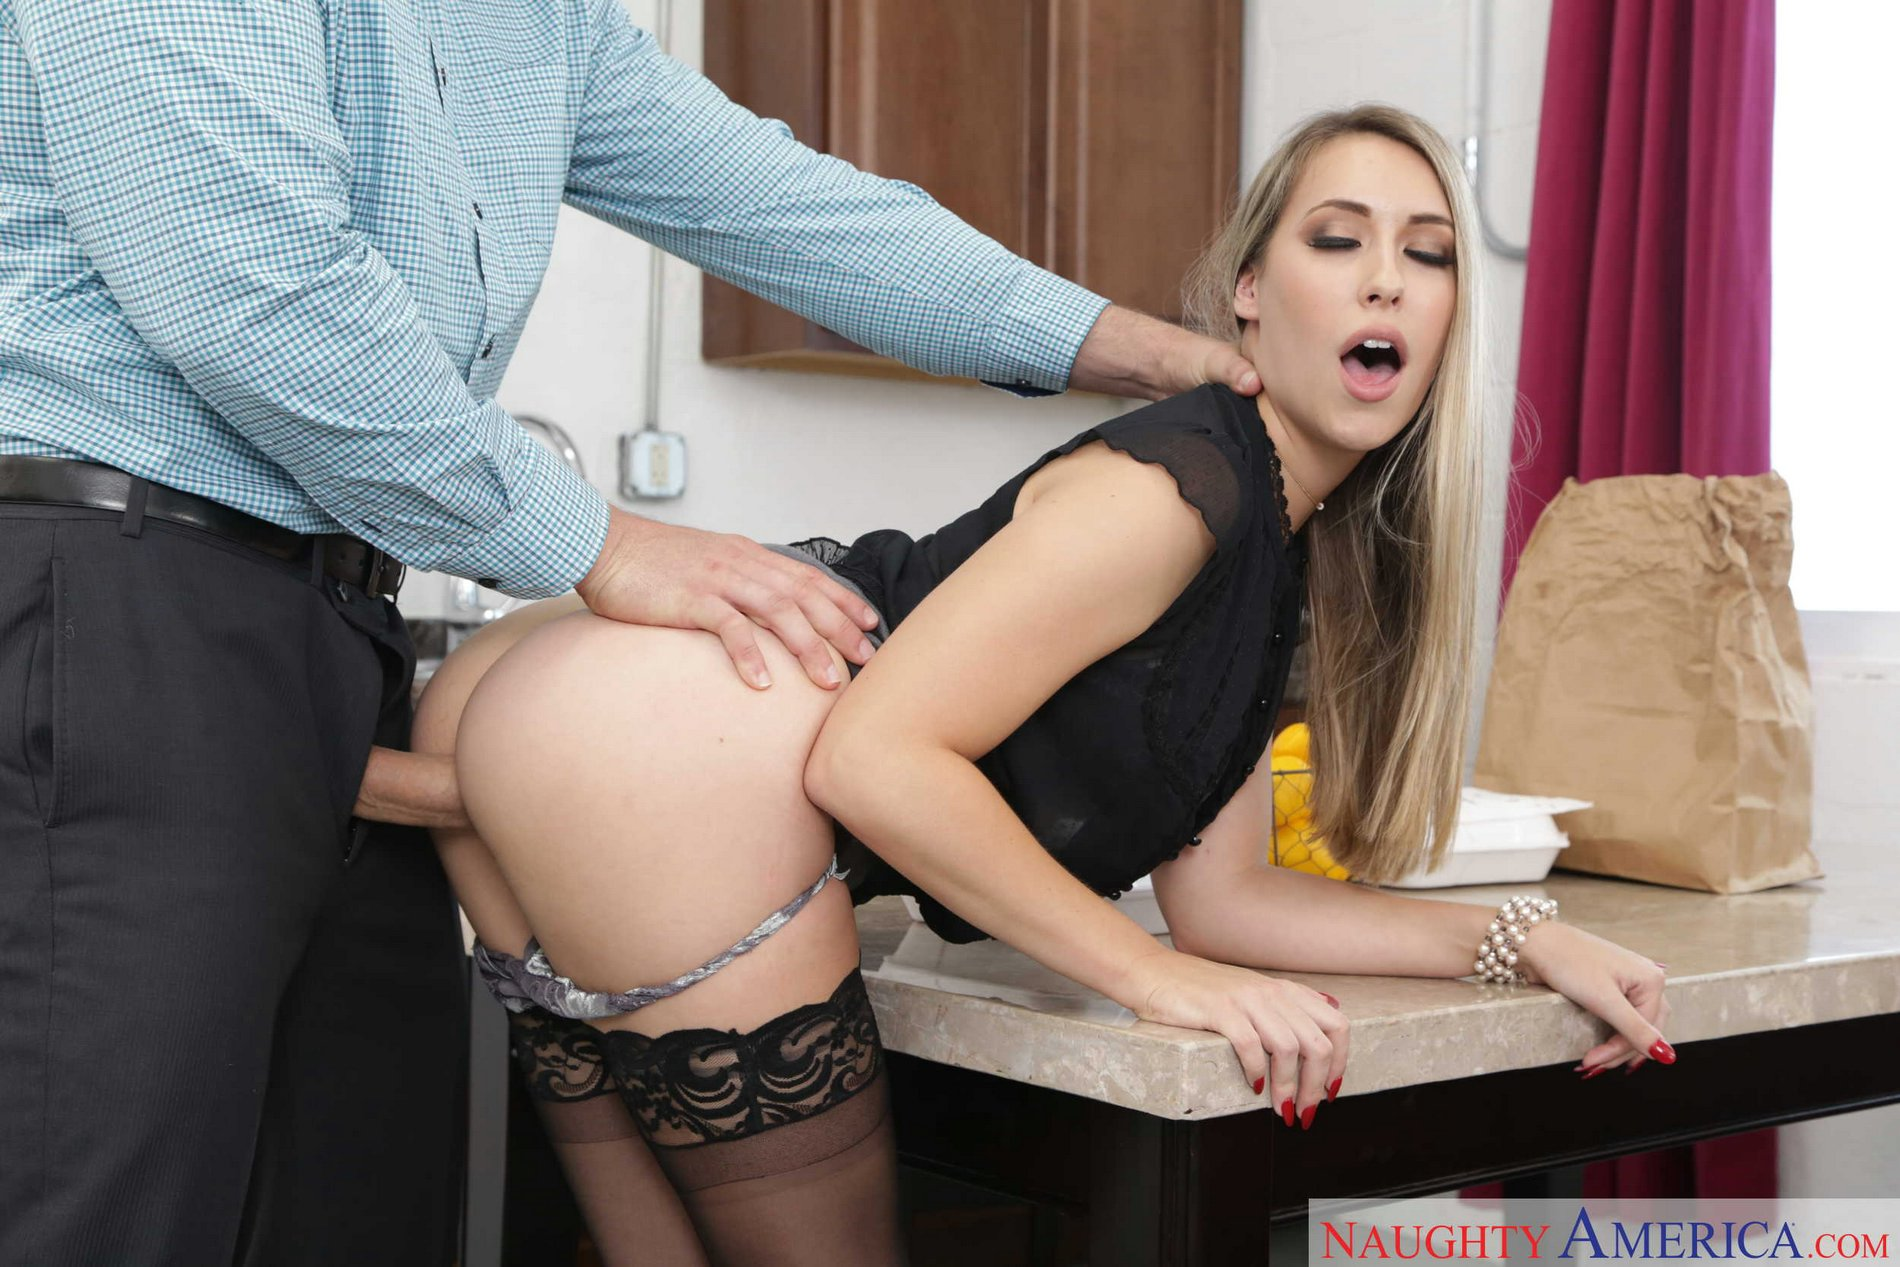 Naughty milf fucked hard on table and chair 6